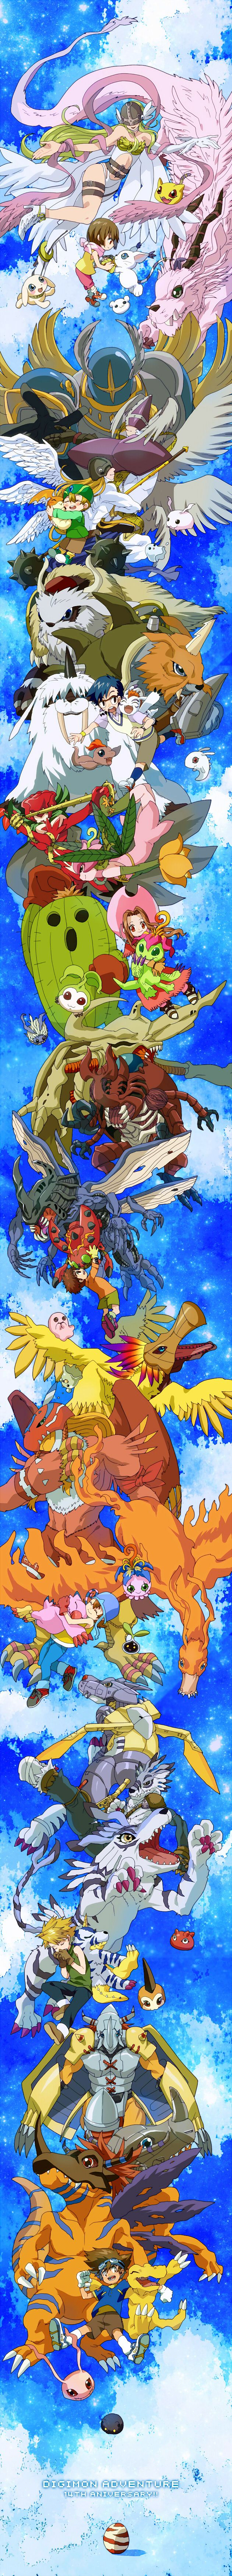 digimon adventure hasta etapa mega